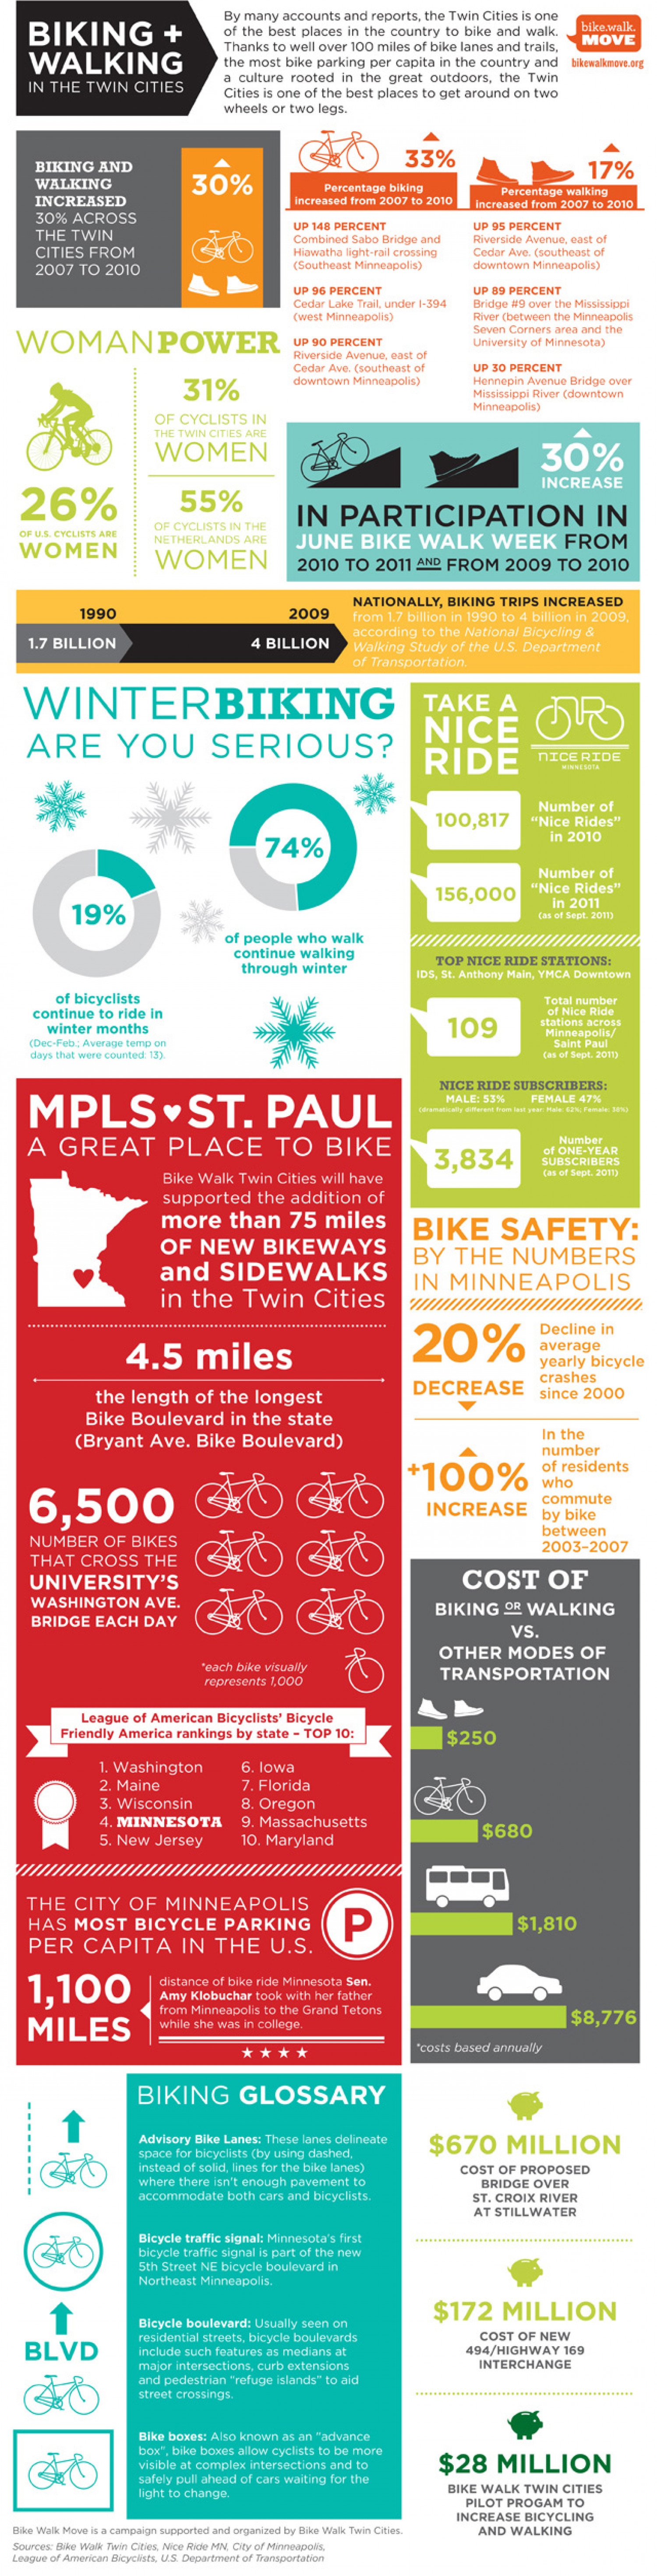 Biking and Walking: In the Twin Cities  Infographic